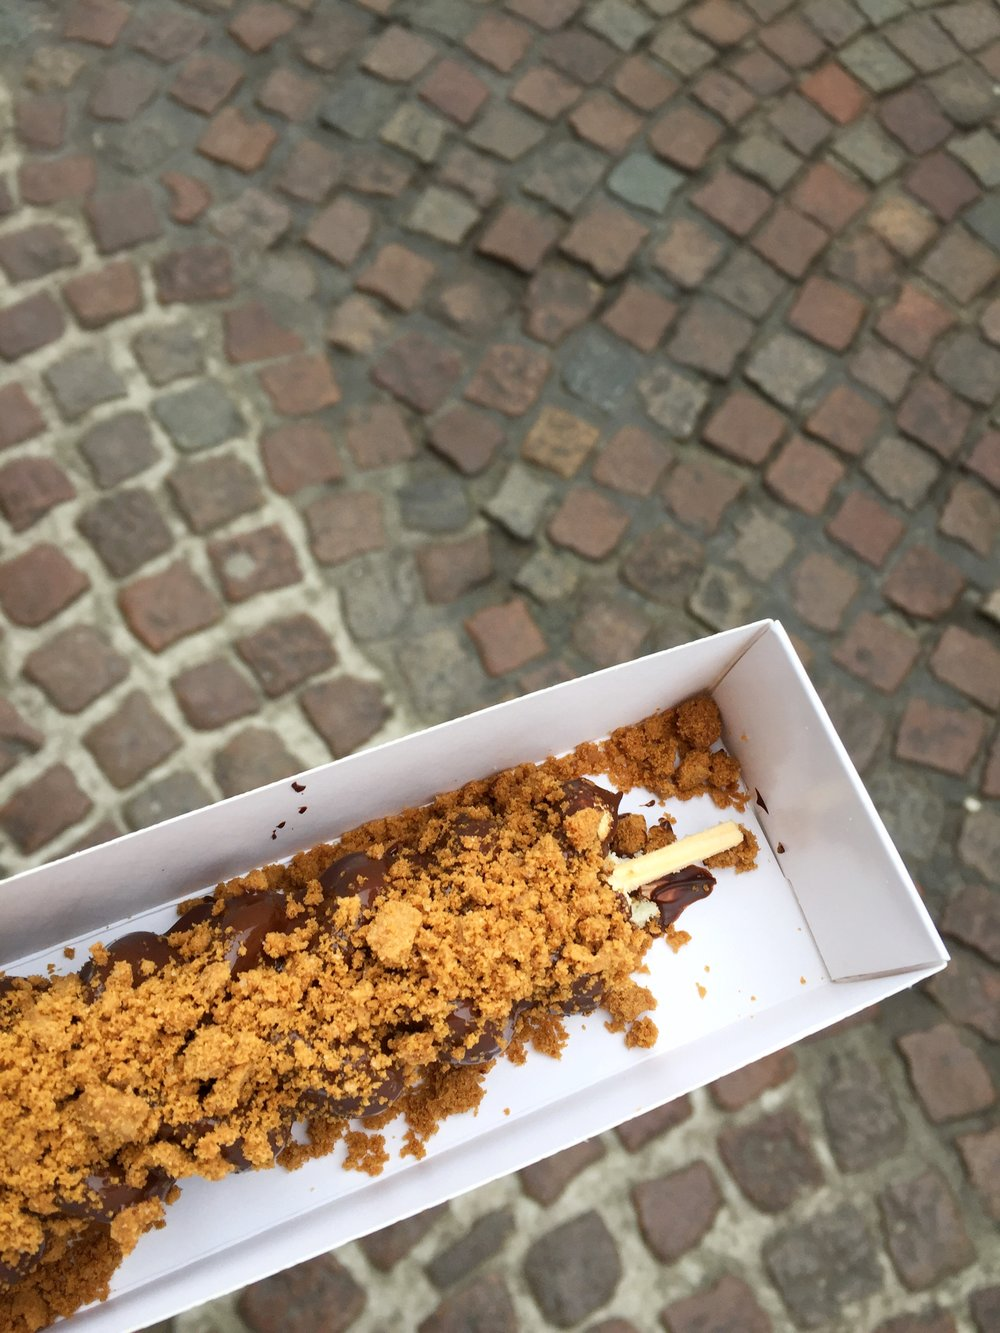 waffle on a stick dipped in chocolate with speculoos cookies (Bruges)